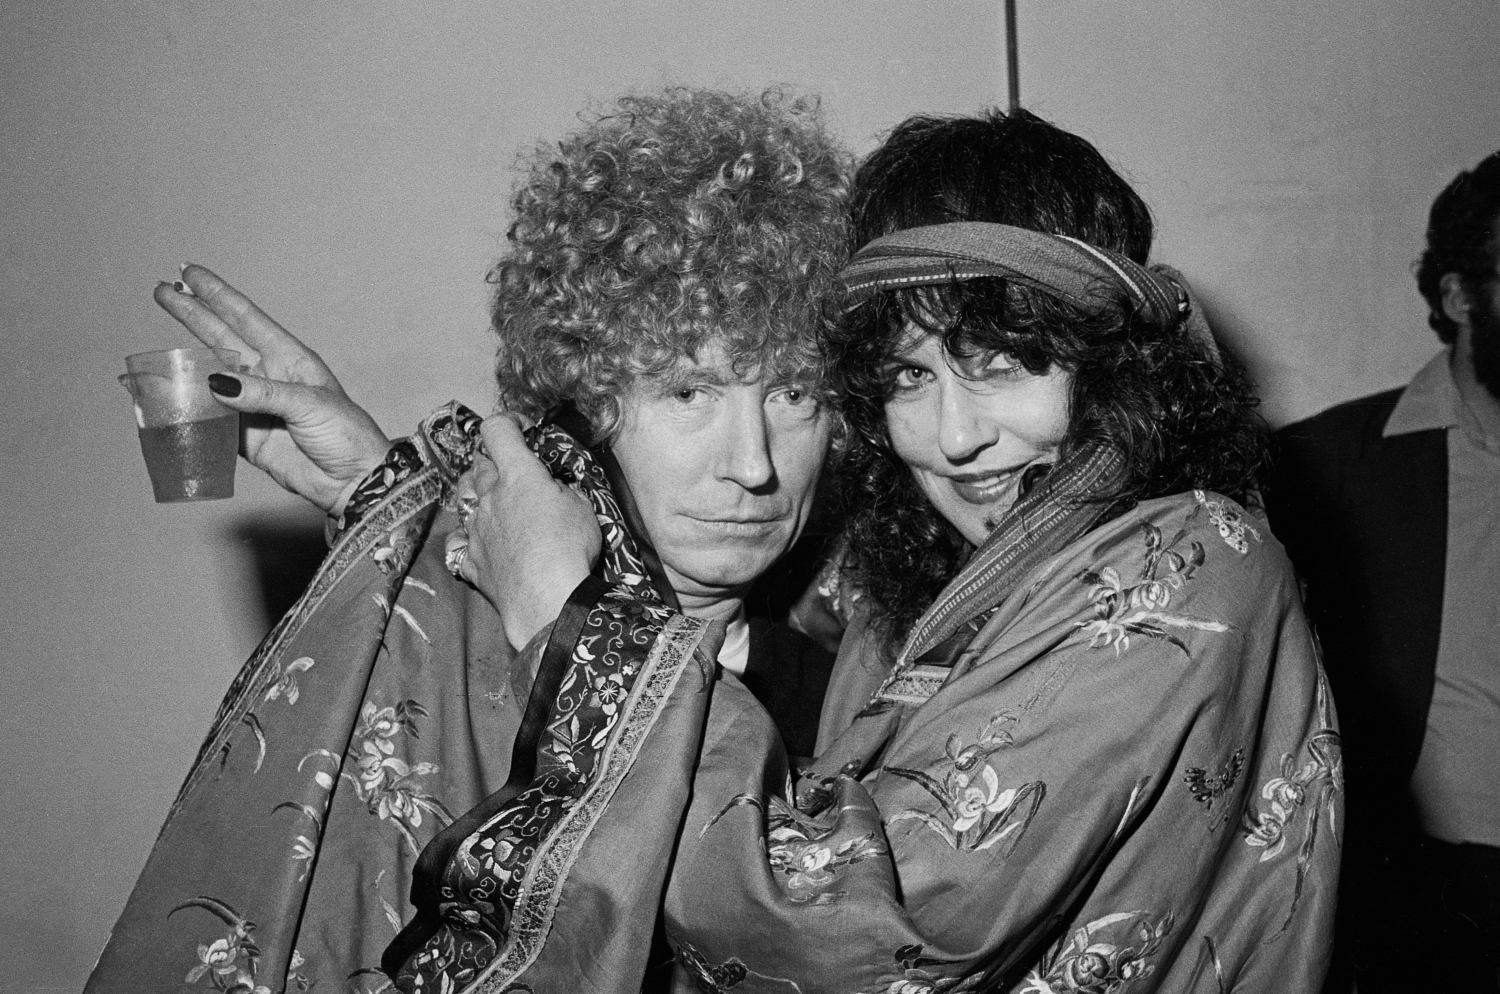 Man with curly hair being hugged by woman with headscarf holding drink and cigarette.